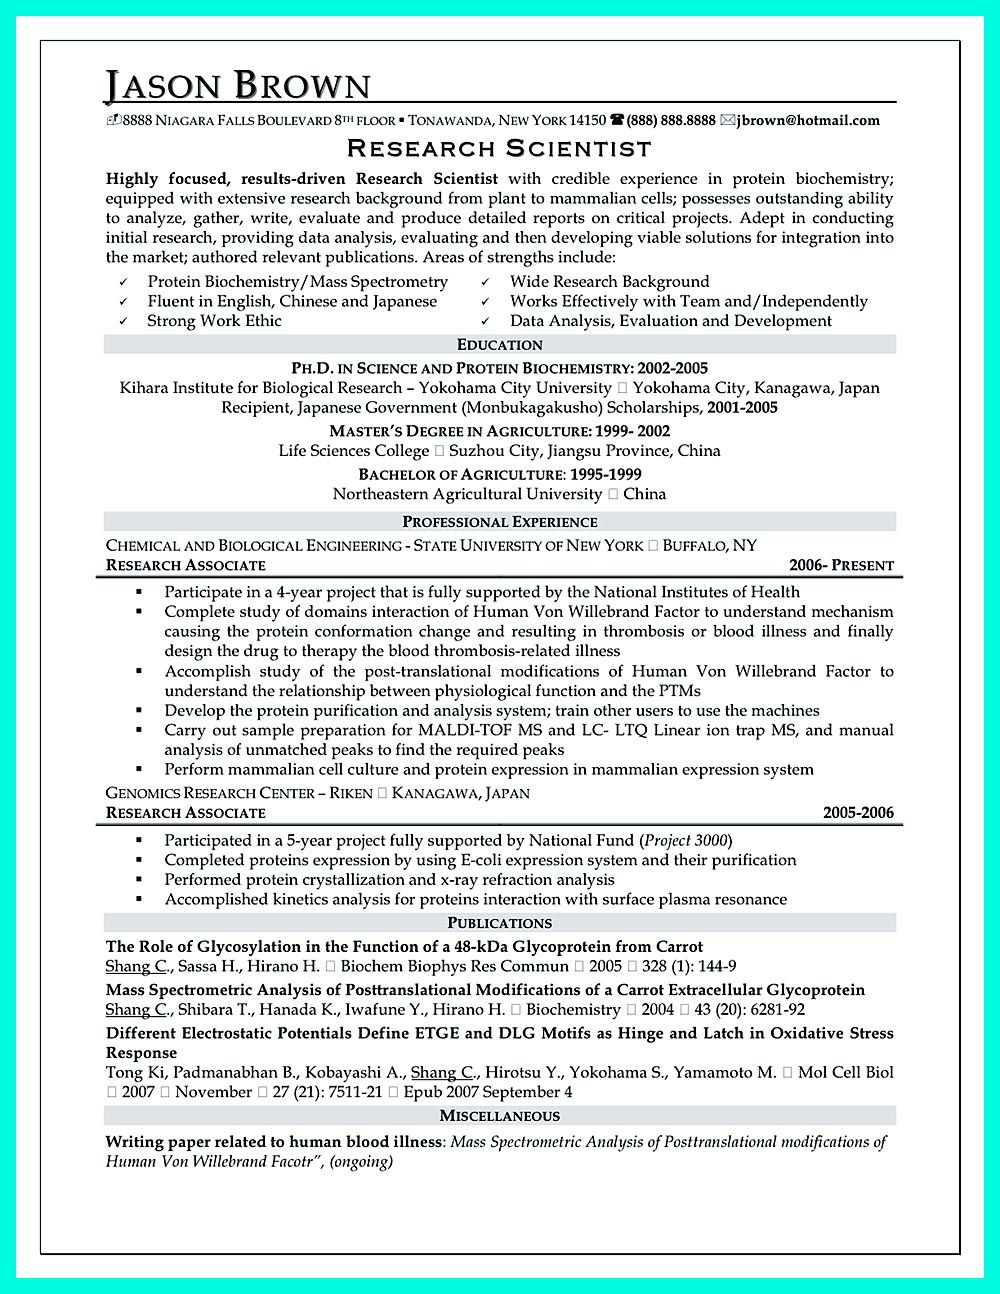 is important in making clinical research associate resume cover letter examples for Resume Clinical Research Resume Format For Freshers